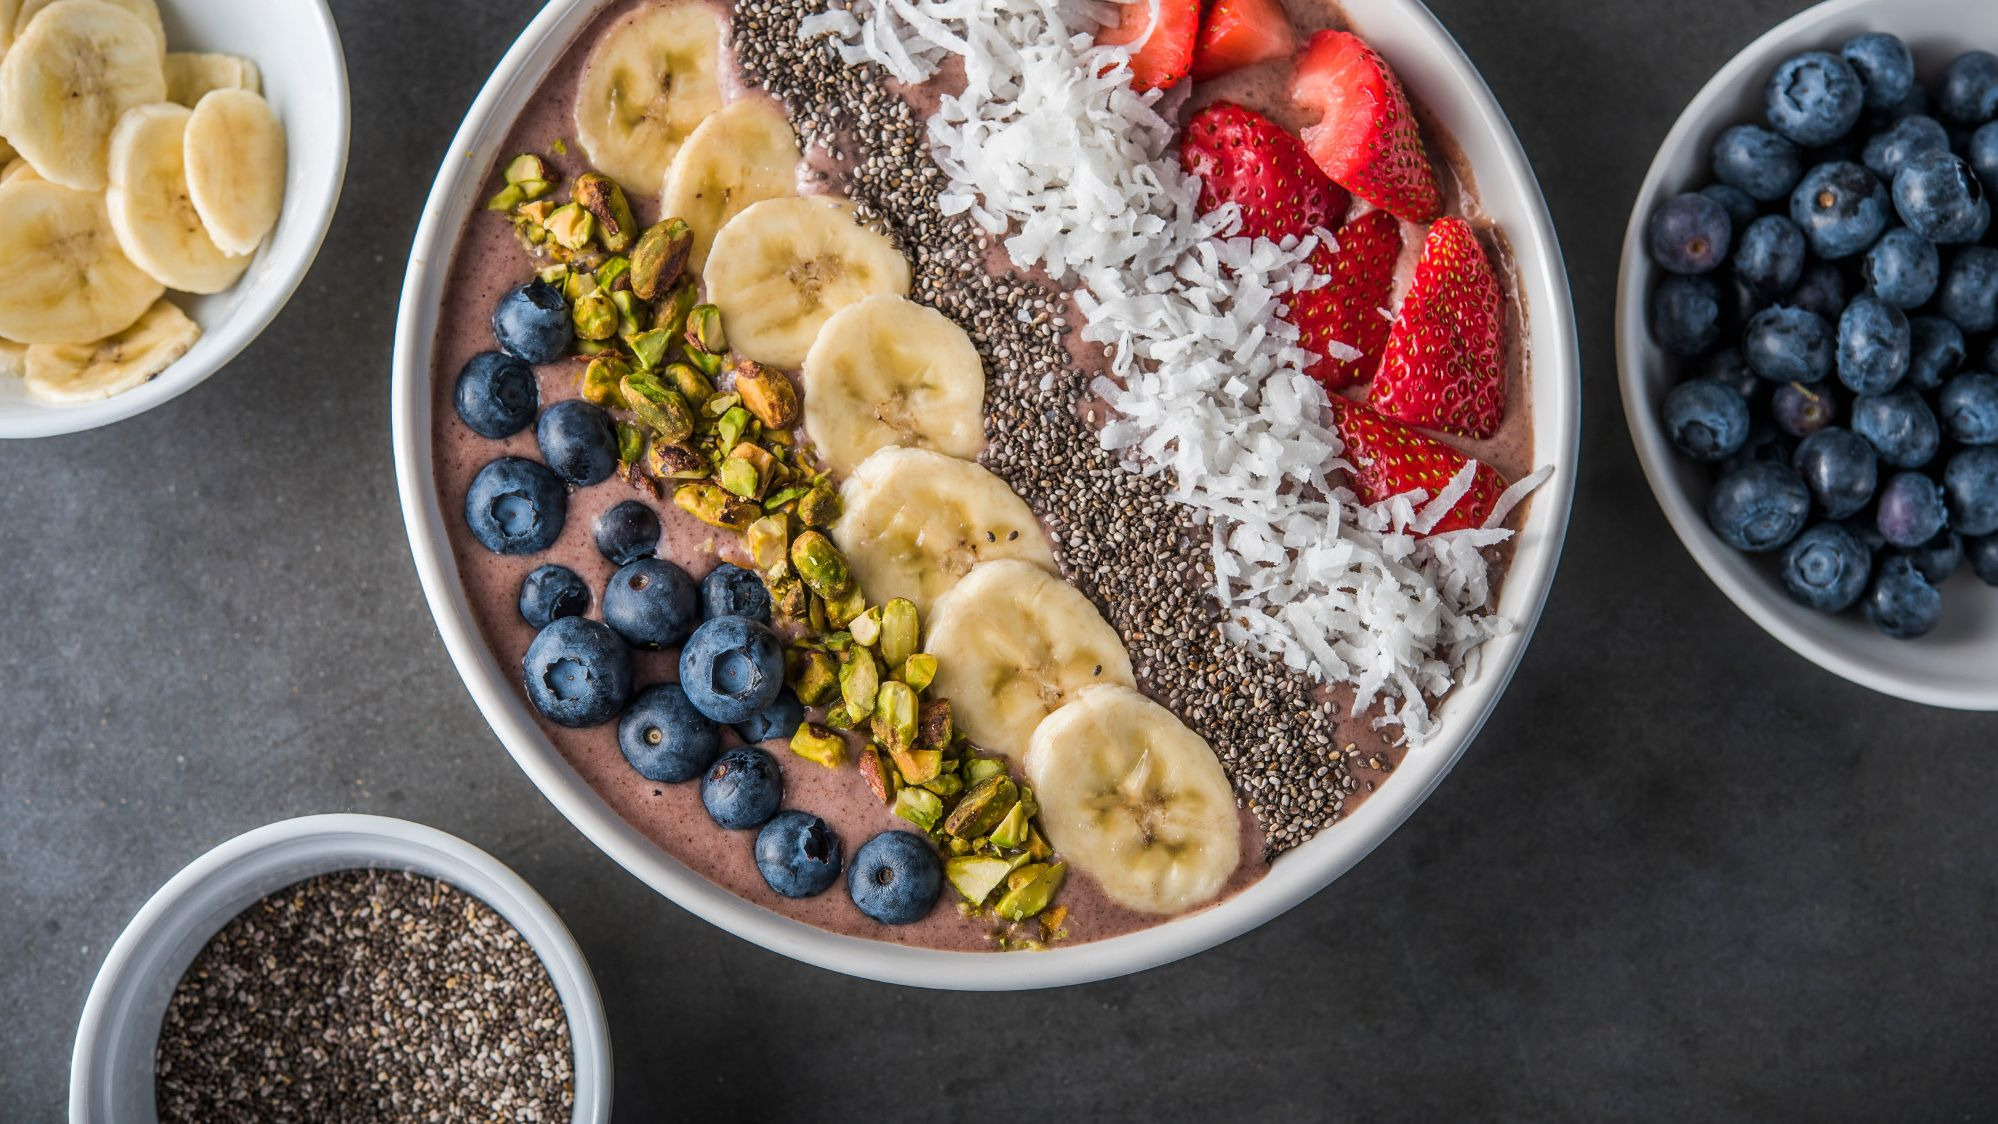 McCormick Tropical Acai Bowl